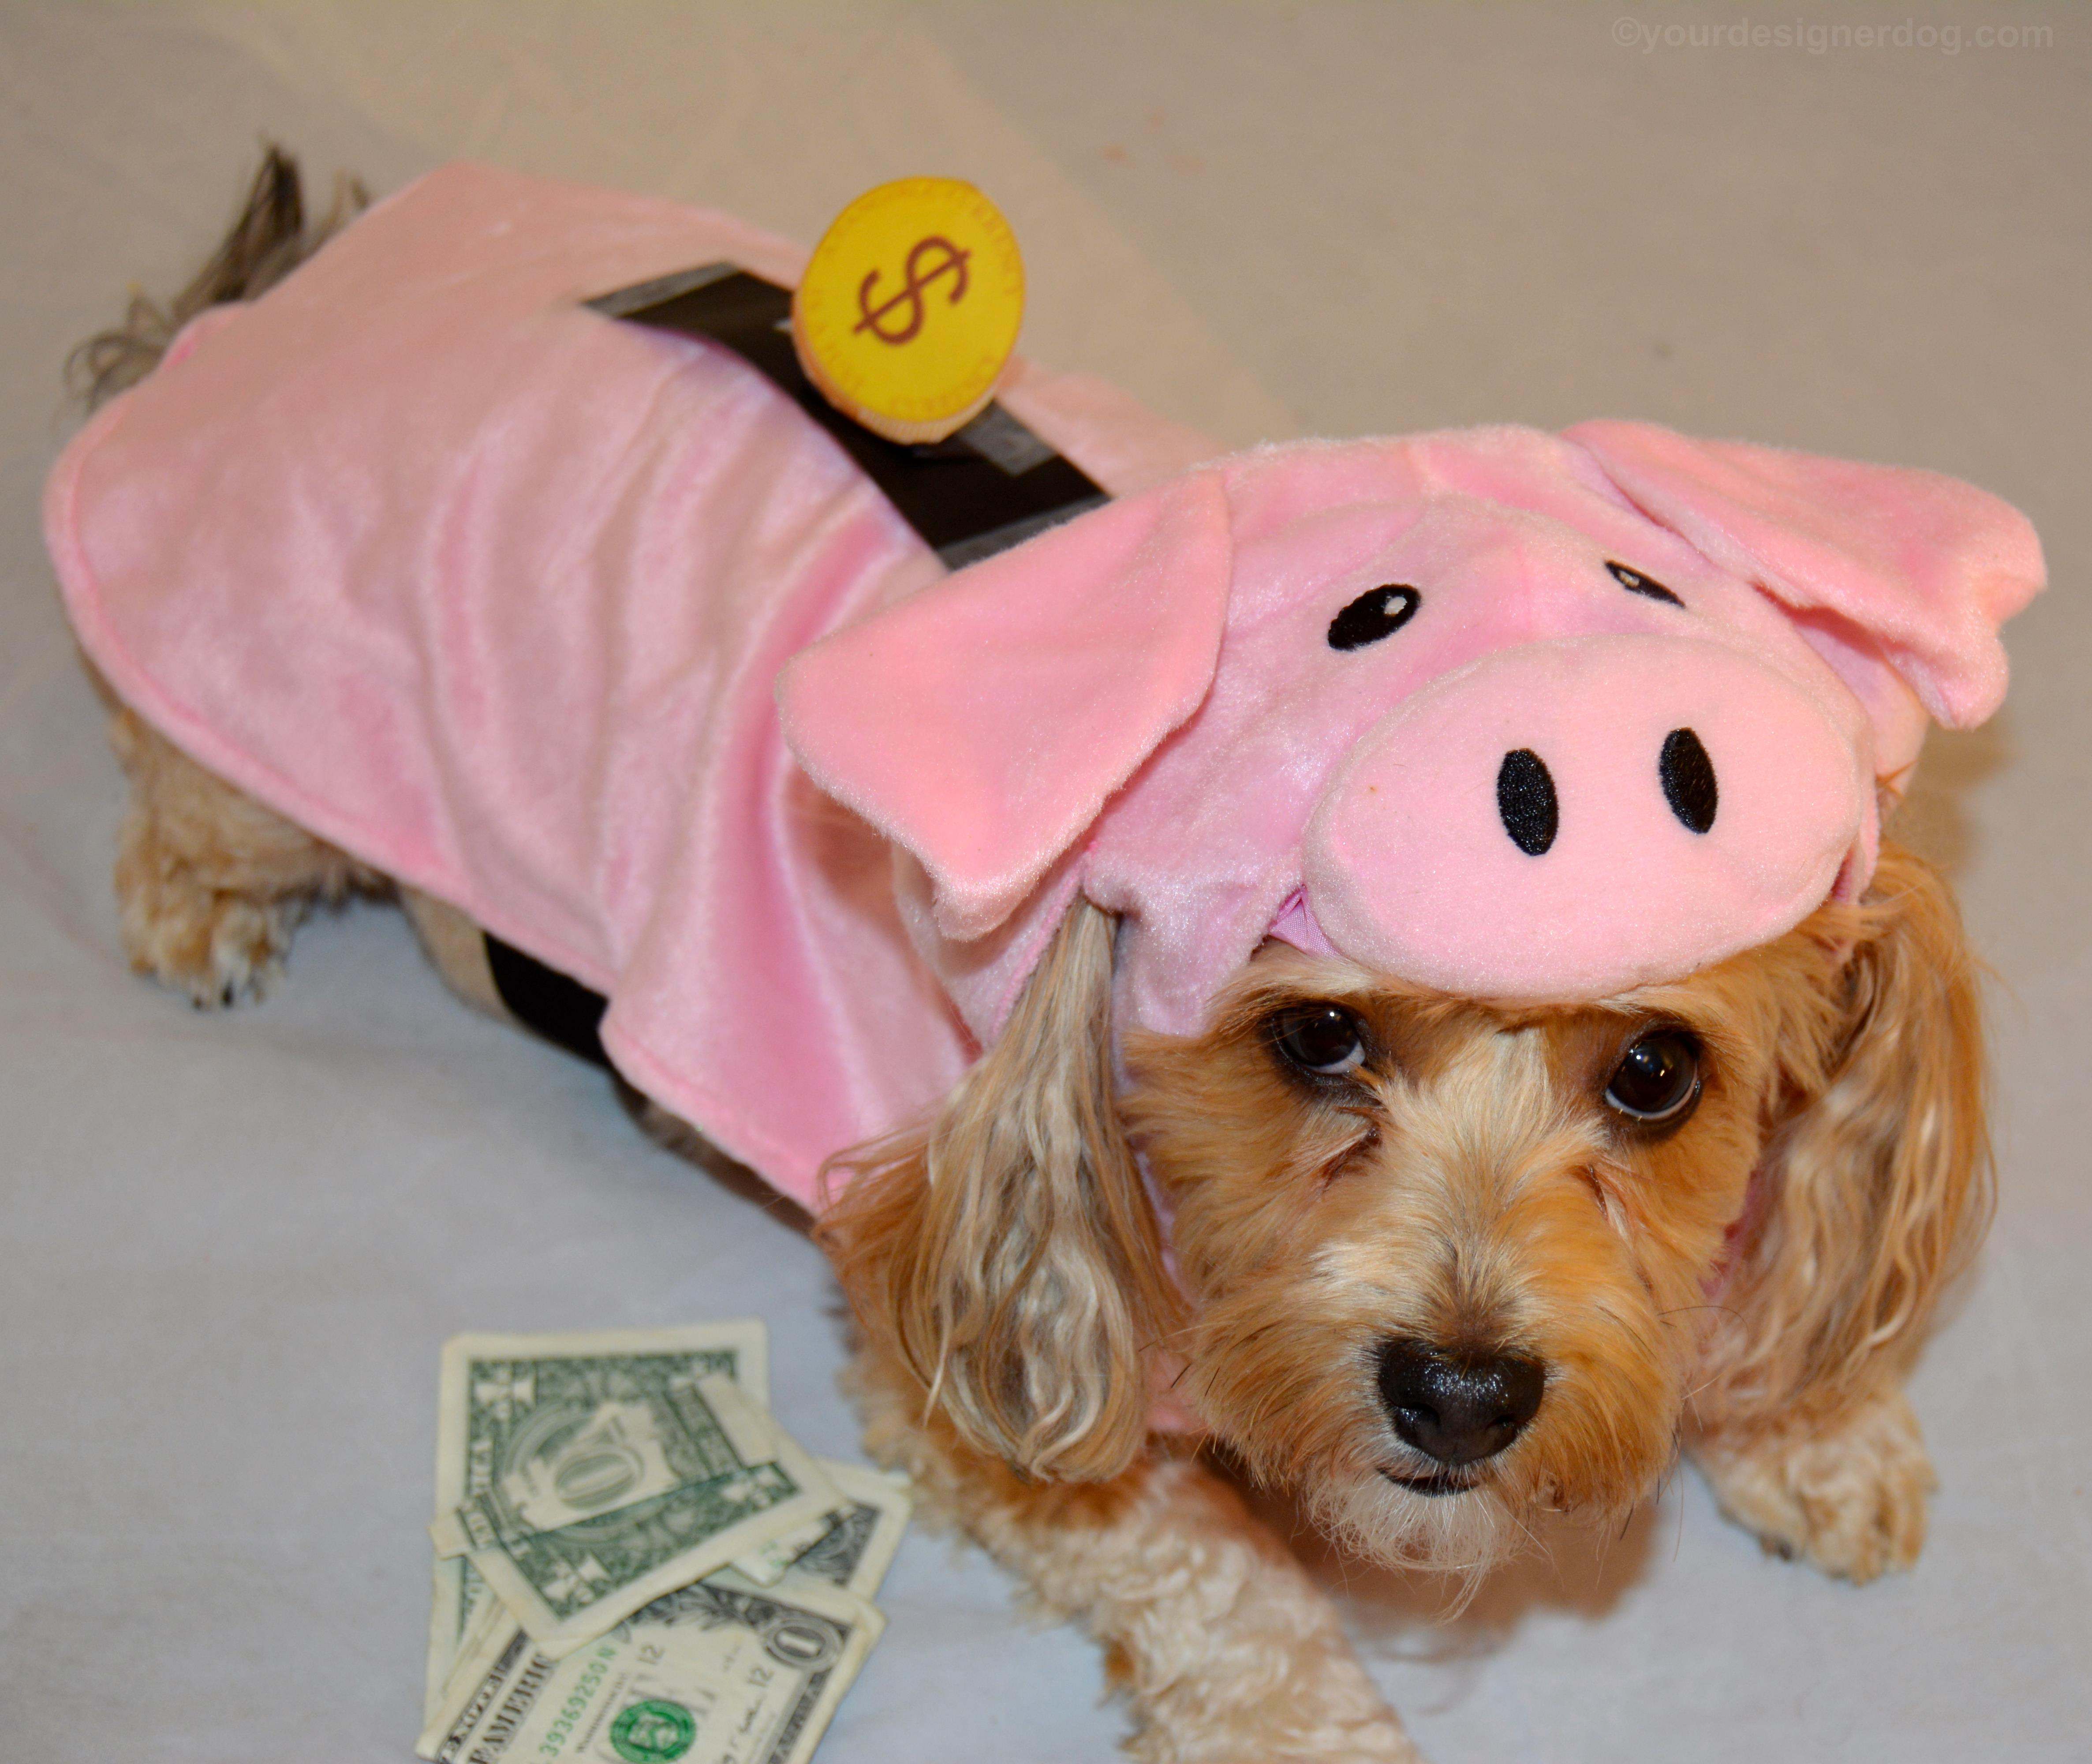 dogs designer dogs Yorkipoo yorkie poo piggy bank Halloween dog : pig dog costume  - Germanpascual.Com